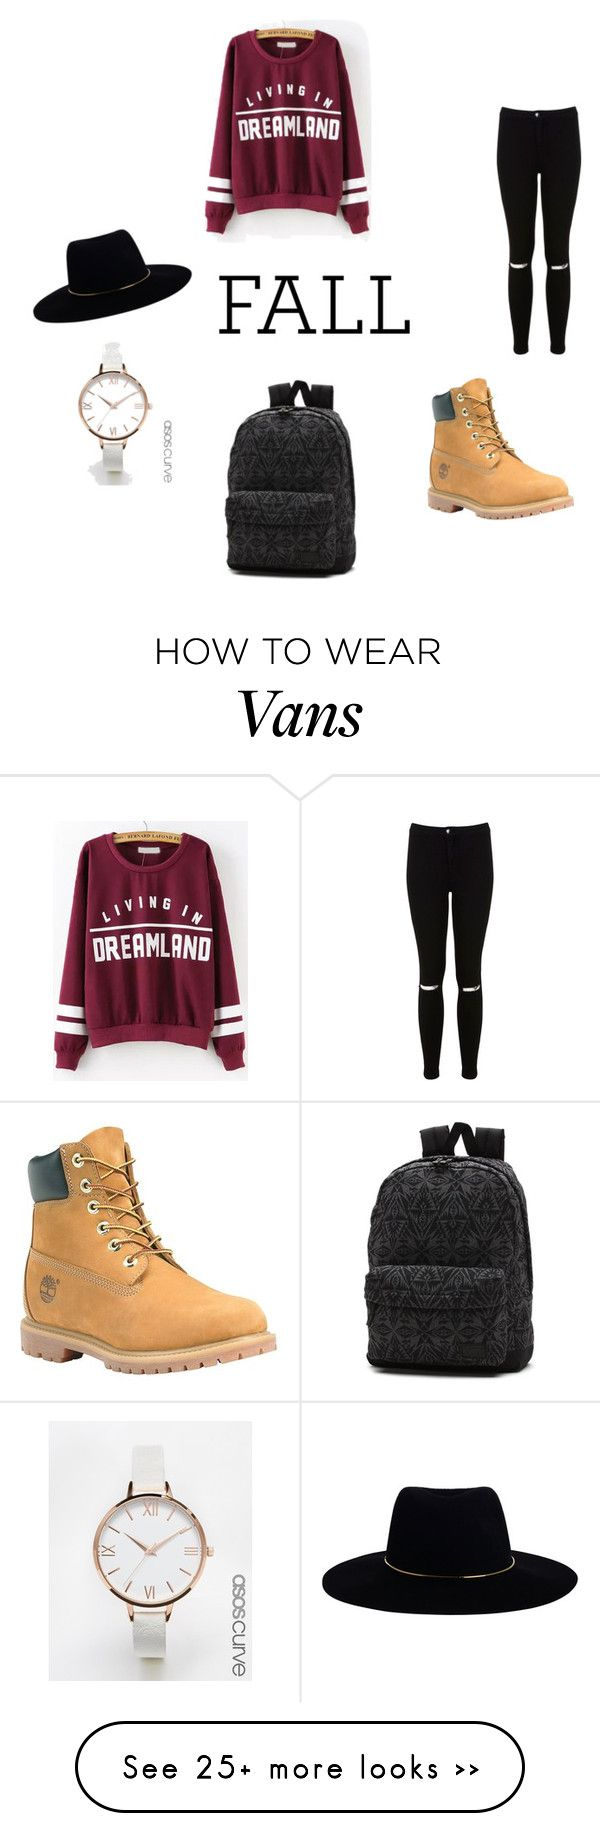 """""""fall"""" by nadjaelsink on Polyvore featuring Miss Selfridge, Vans, Timberland, ASOS Curve and Zimmermann"""